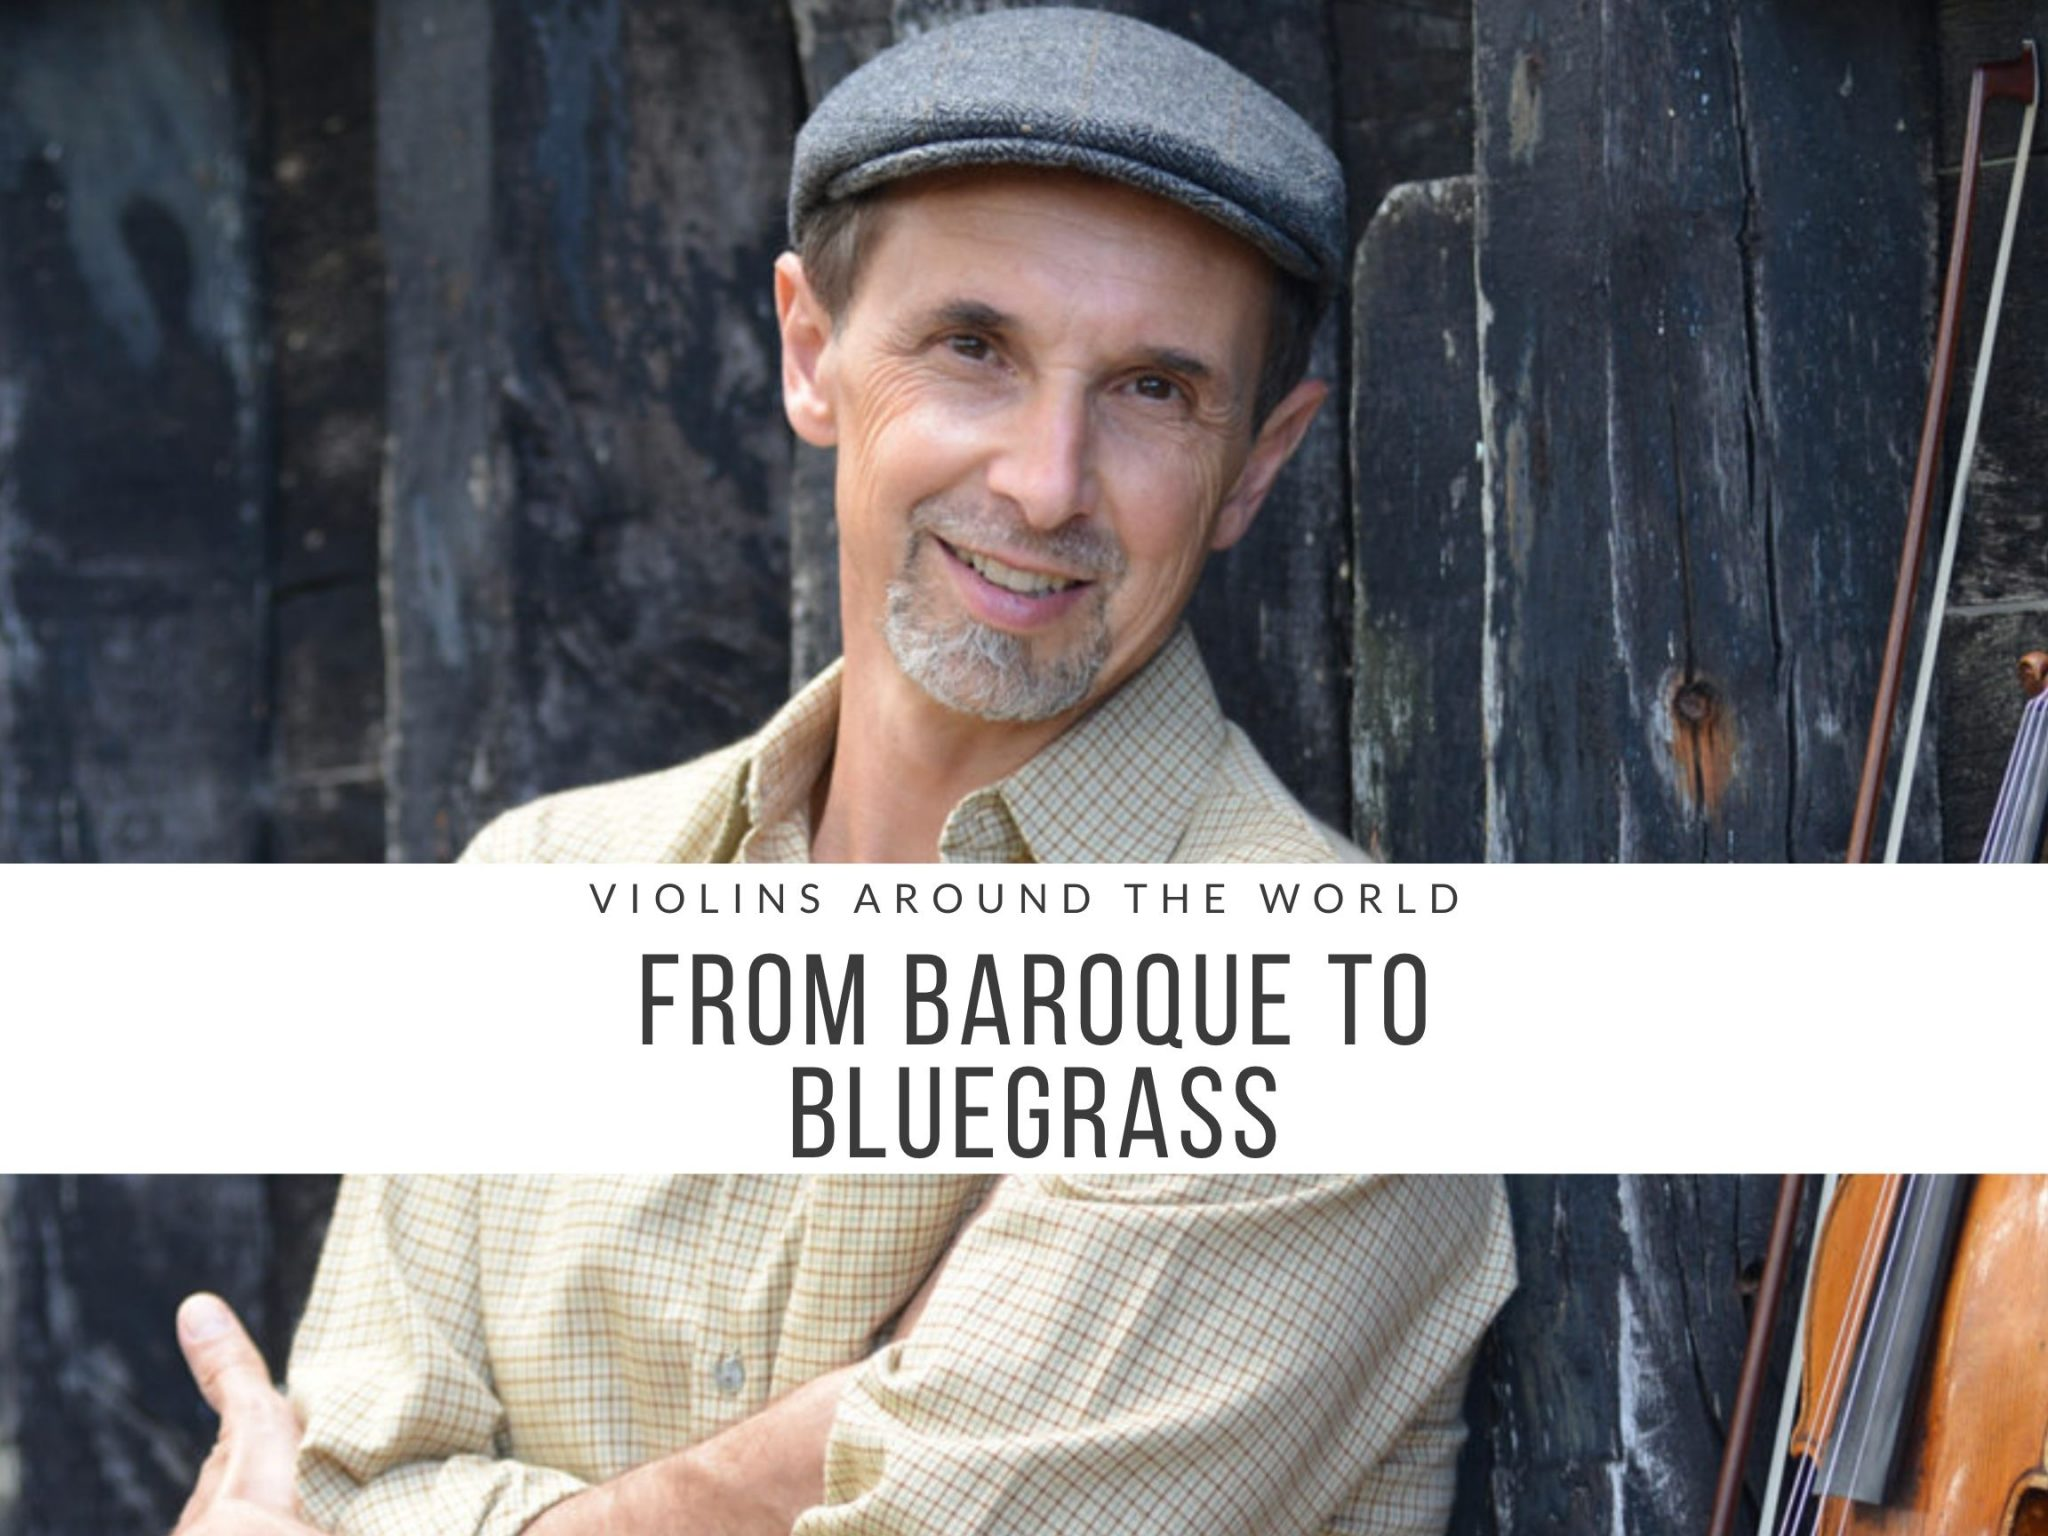 Violins Around The World: From Baroque to Bluegrass